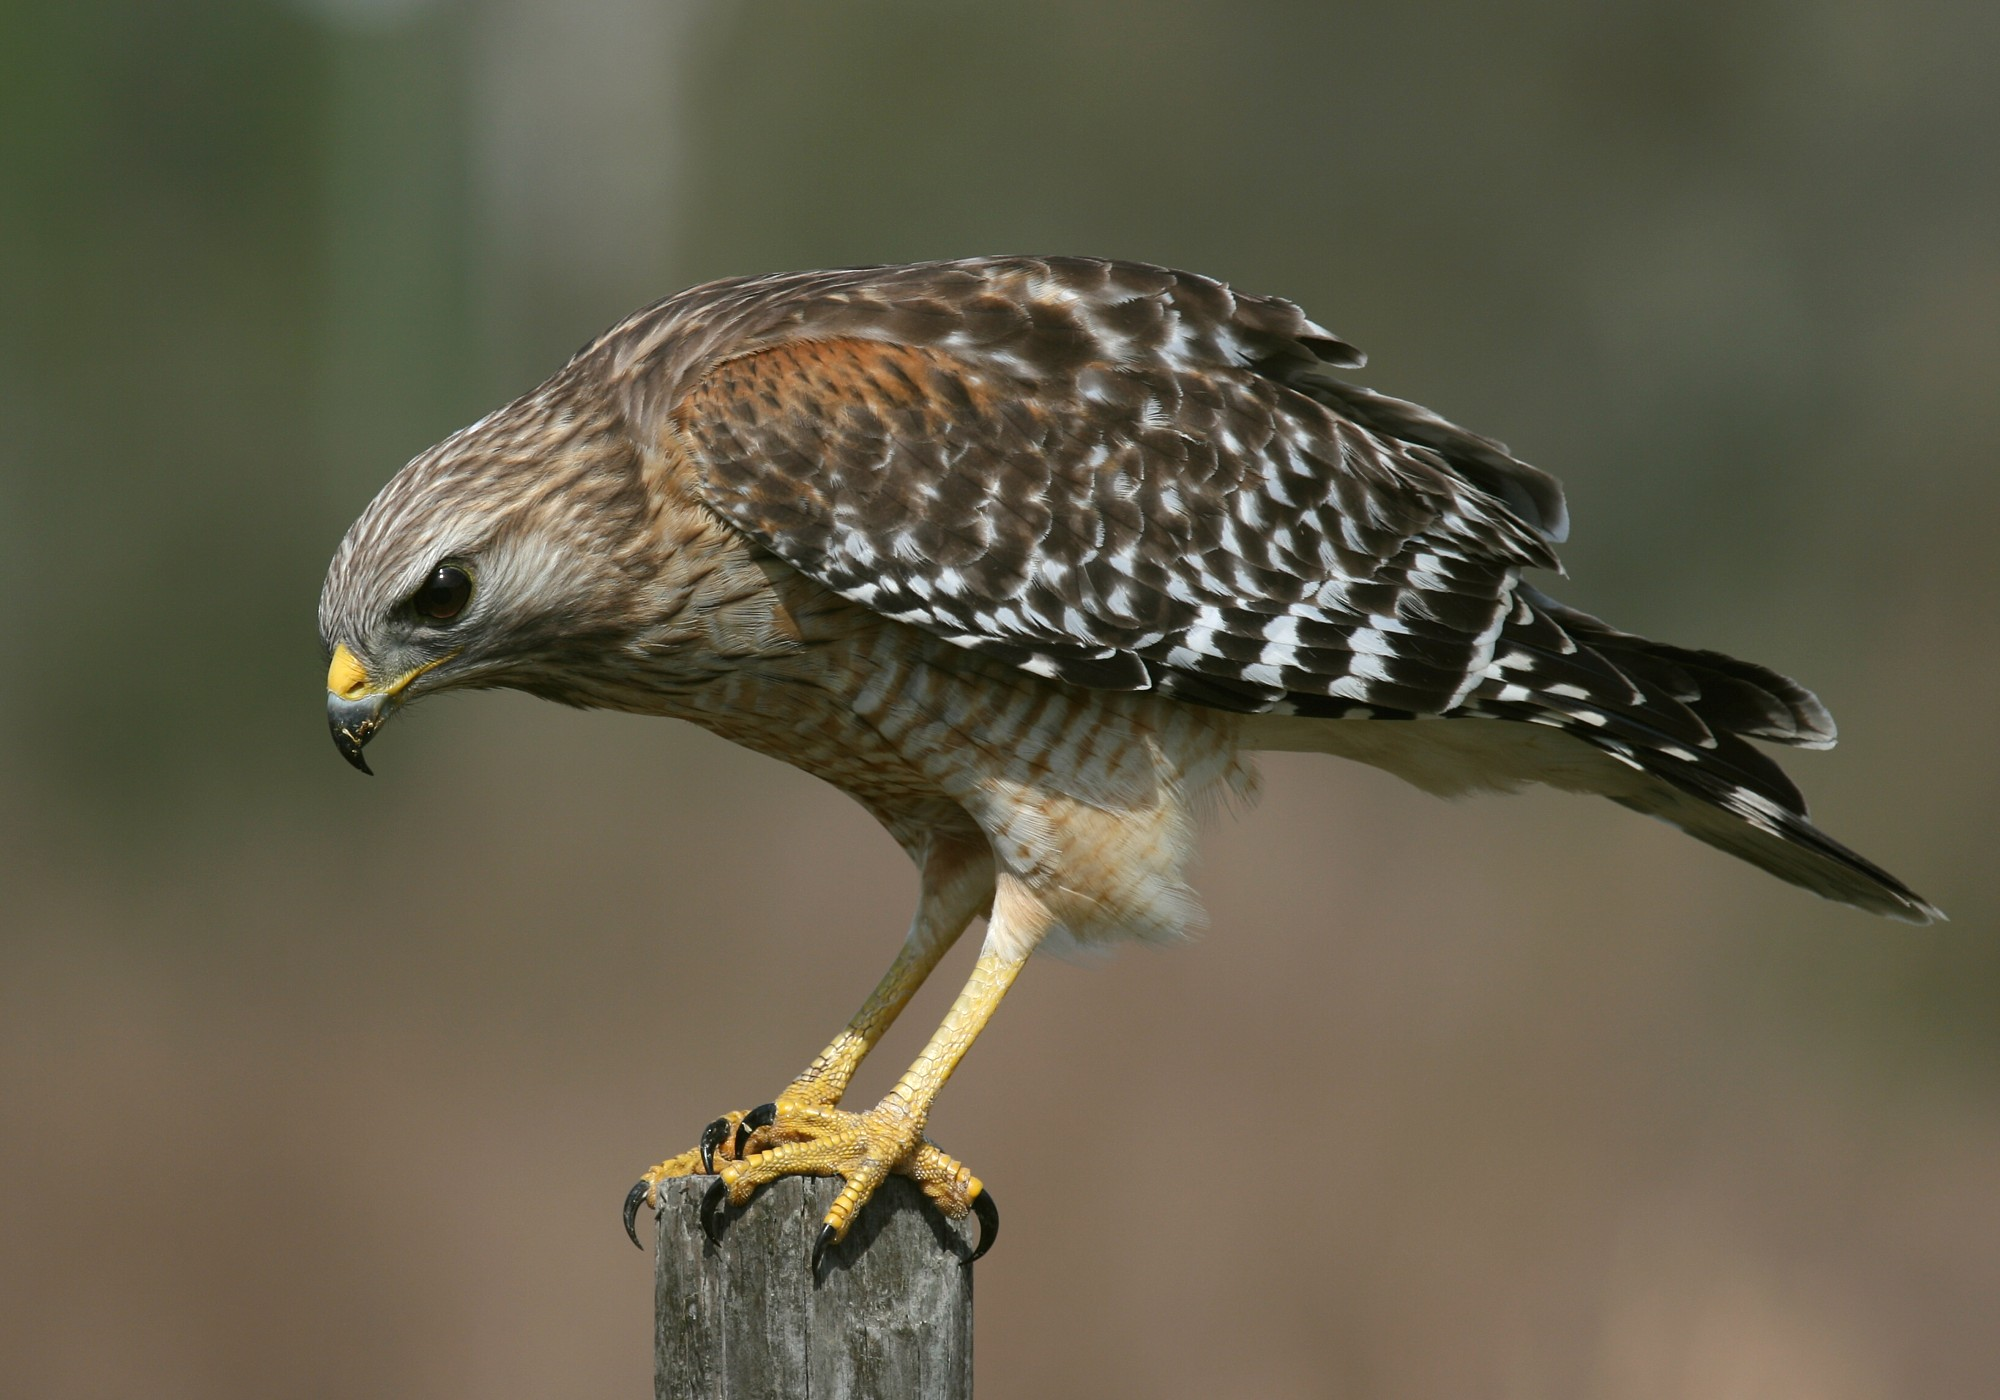 Hawk Family Accipitridae 54.01 Kb